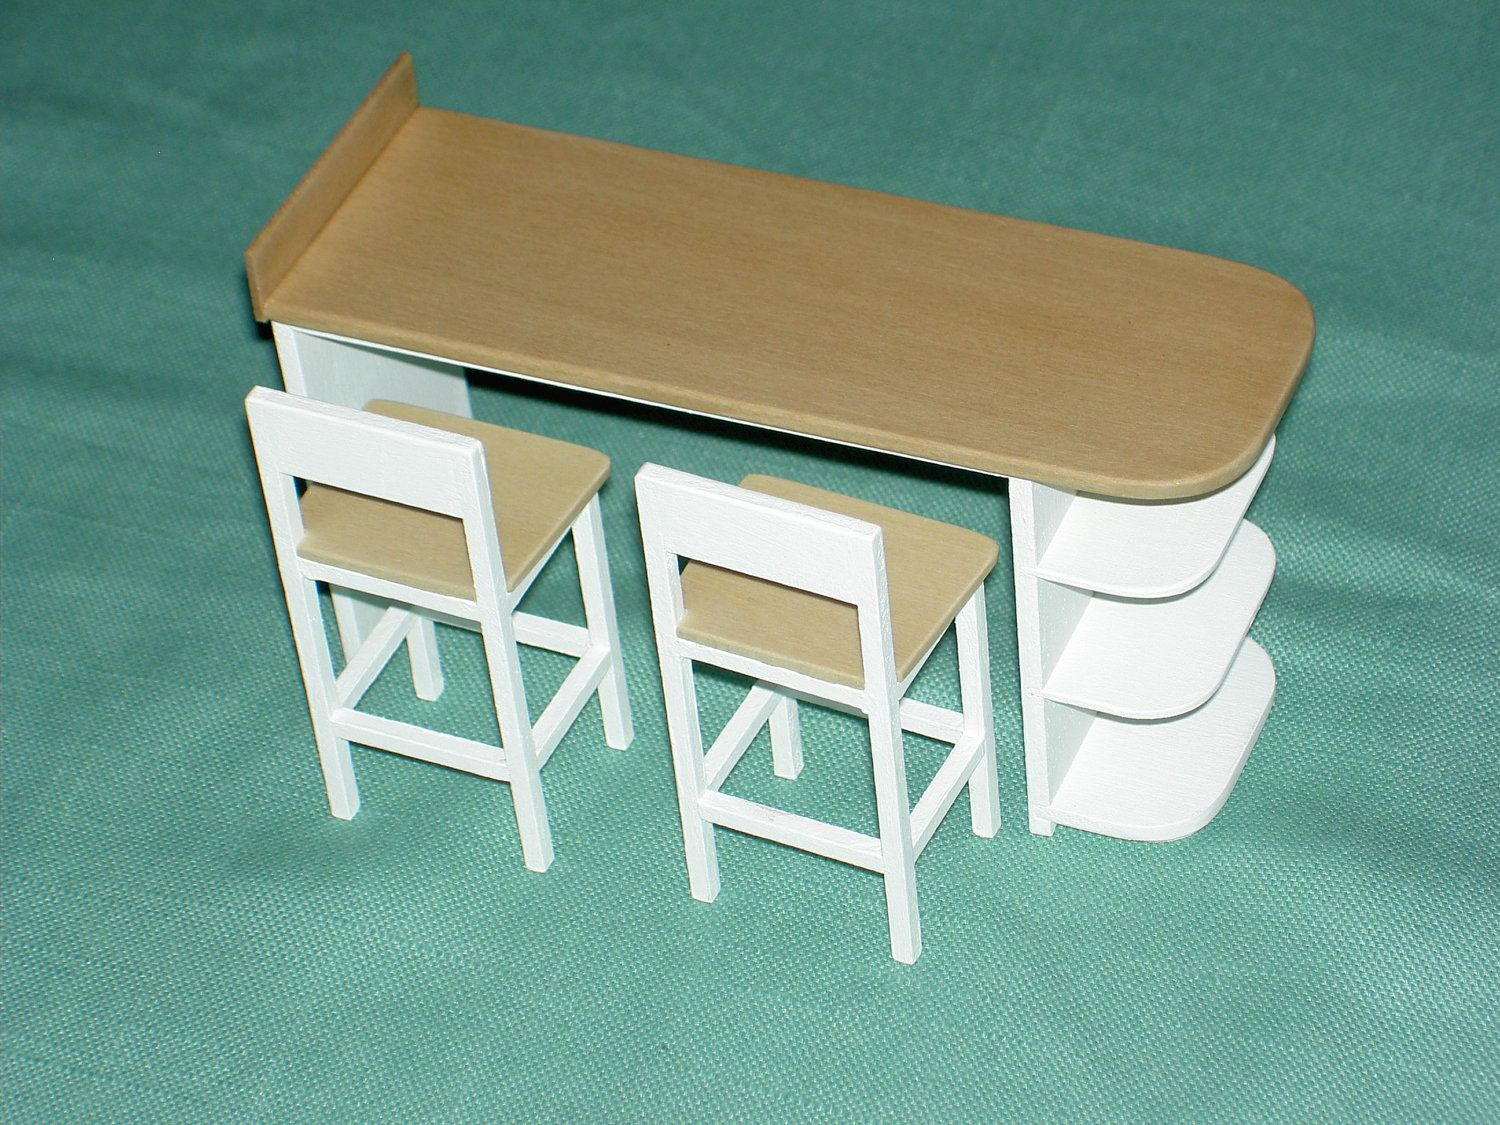 1:6 scale Miniature Kitchen Snack Bar & Stools | Minis! Minis! Minis ...